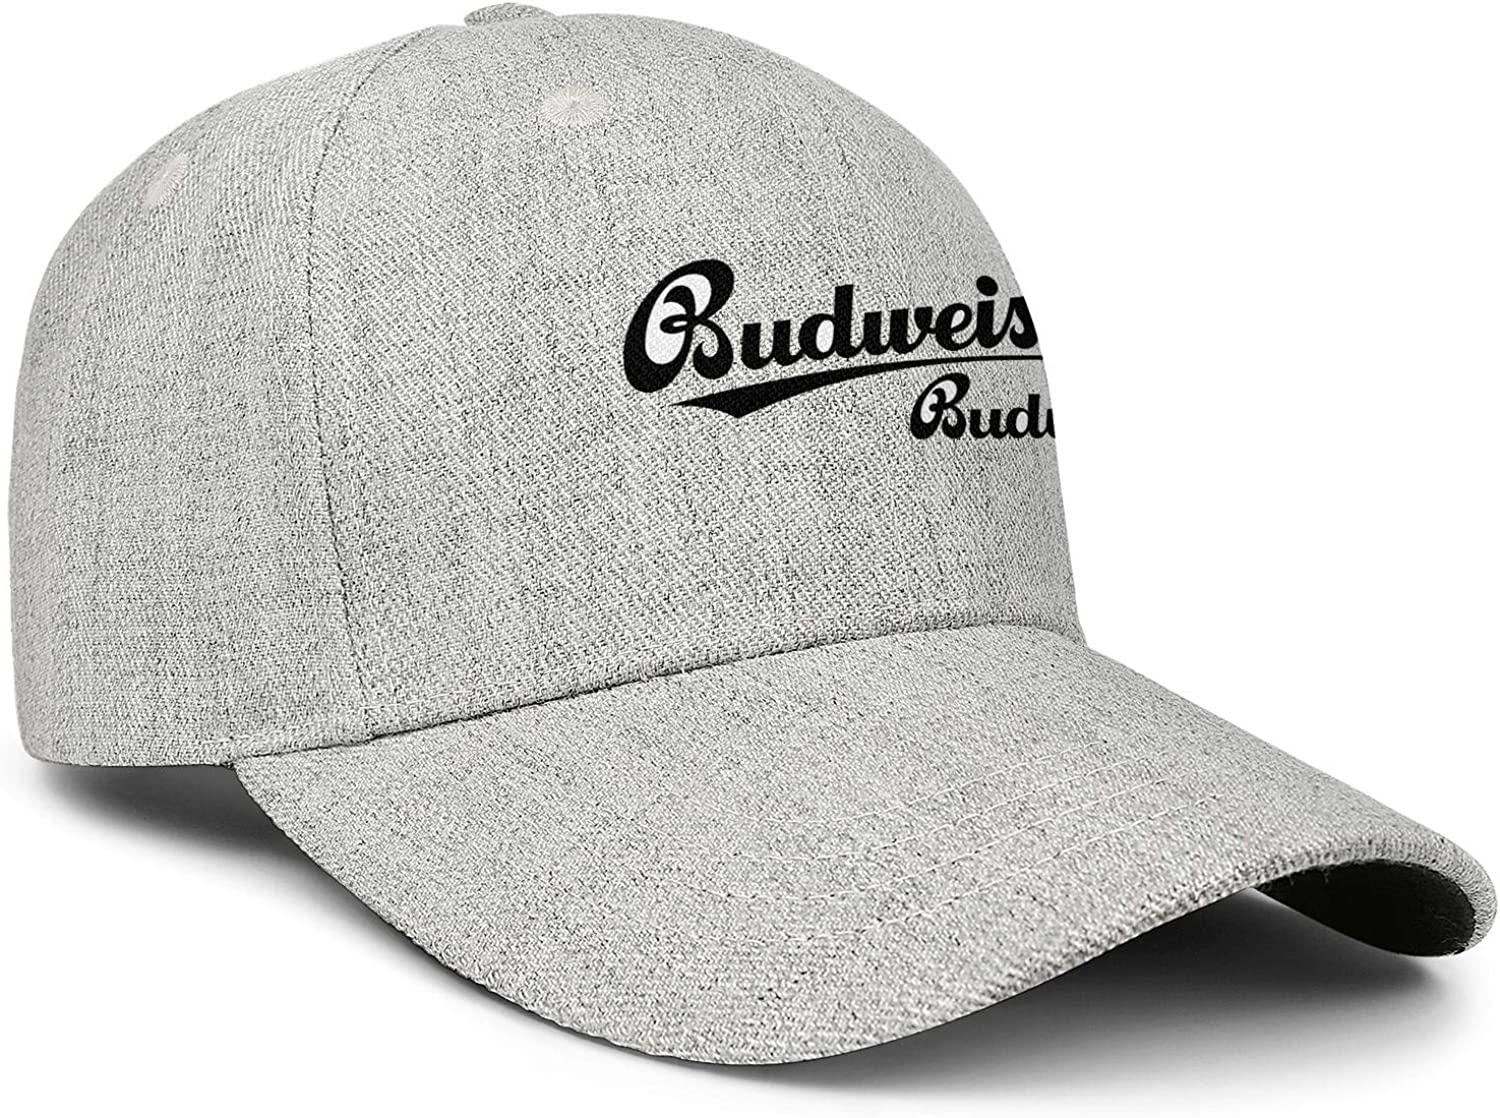 Budweiser Budvar Logo Womens Men Wool Cool Cap Adjustable Snapback Beach Hat